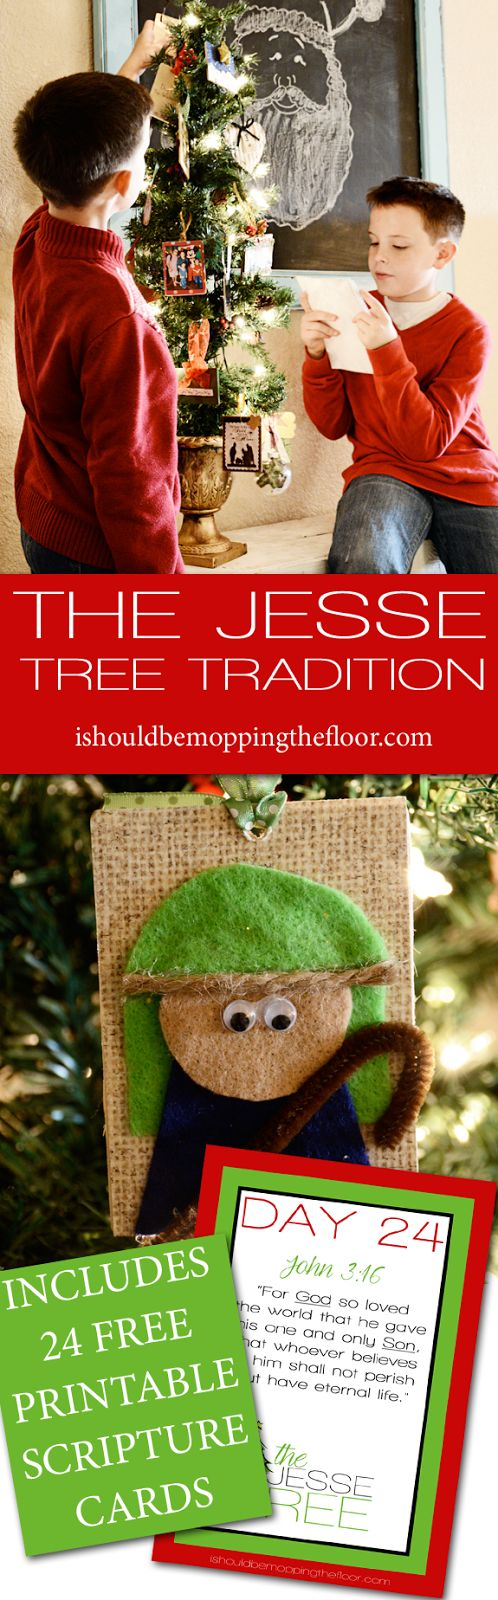 The Jesse Tree Christmas Tradition | Free Printable Scripture Cards | A unique and blessed tradition to depict the story of the birth through ornaments and scriptures.